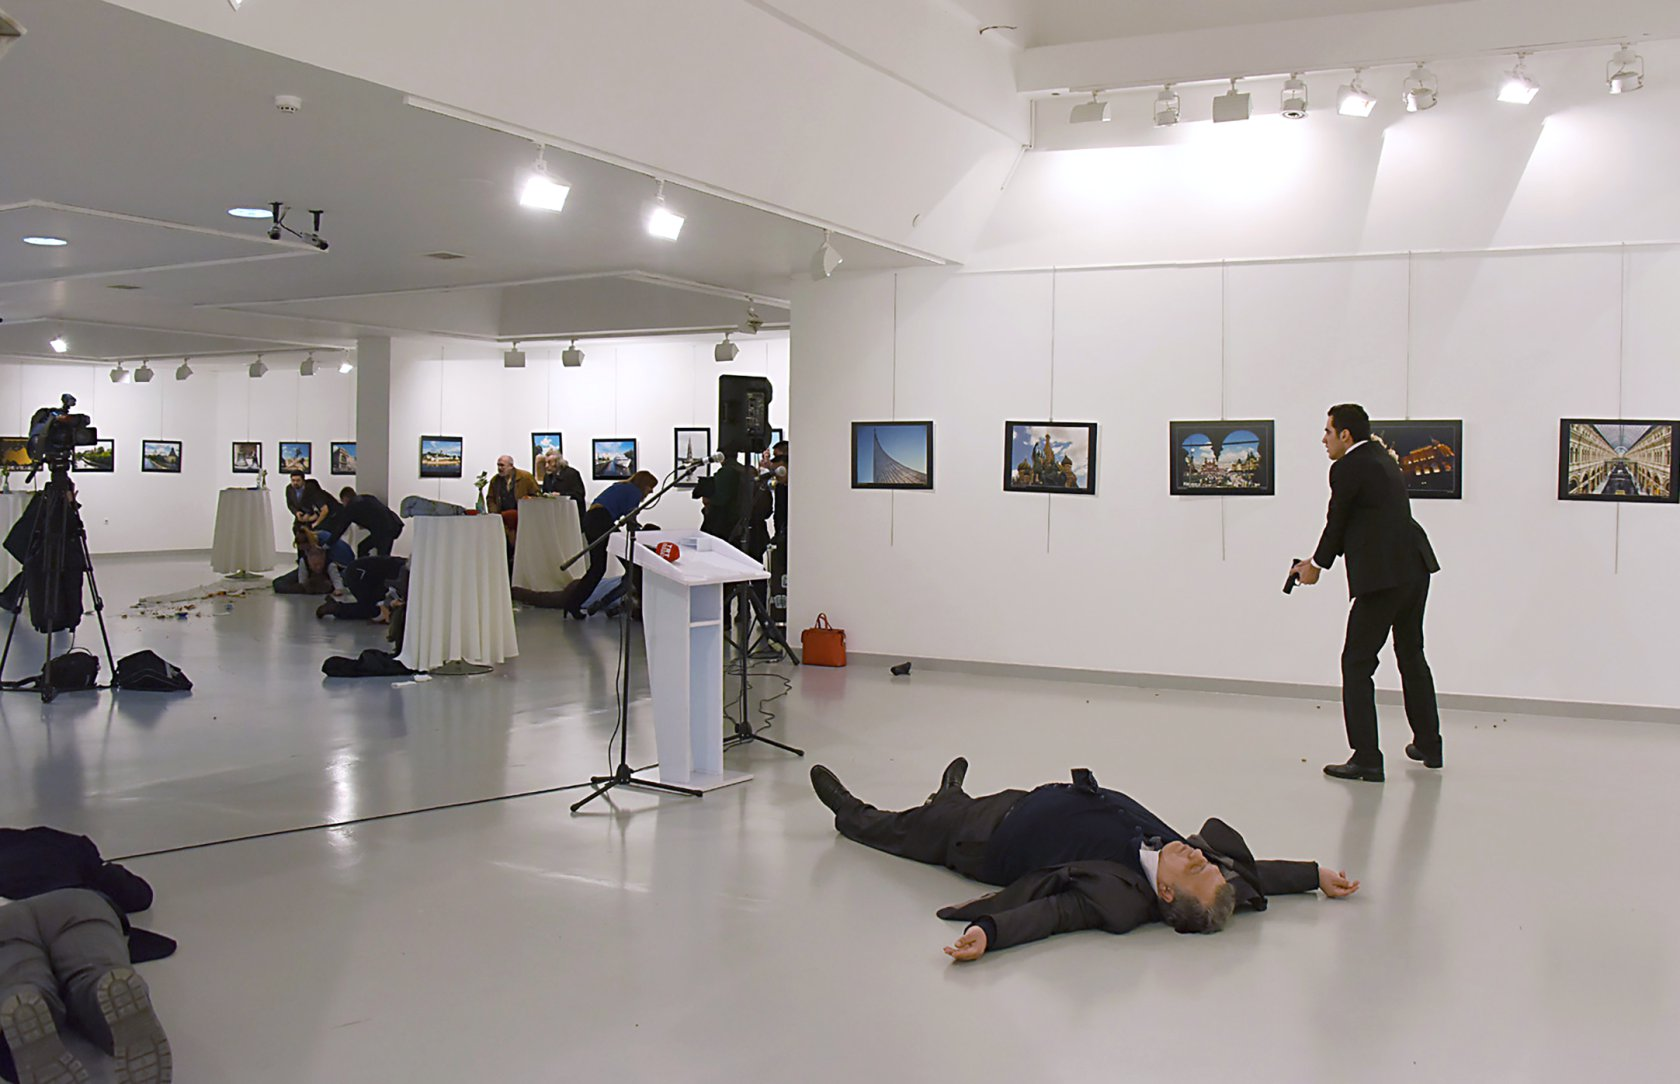 """TOPSHOT - EDITORS NOTE: Graphic content / This picture taken on December 19, 2016 shows Andrei Karlov (2ndR), the Russian ambassador to Ankara, lying on the floor after being shot by Mevlut Mert Altintas (R) during an attack during a public event in Ankara. A gunman crying """"Aleppo"""" and """"revenge"""" shot Karlov while he was visiting an art exhibition in Ankara on December 19, witnesses and media reports said. The Turkish state-run Anadolu news agency said the gunman had been """"neutralised"""" in a police operation, without giving further details. / AFP / Sozcu daily / Yavuz Alatan (Photo credit should read YAVUZ ALATAN/AFP/Getty Images)"""